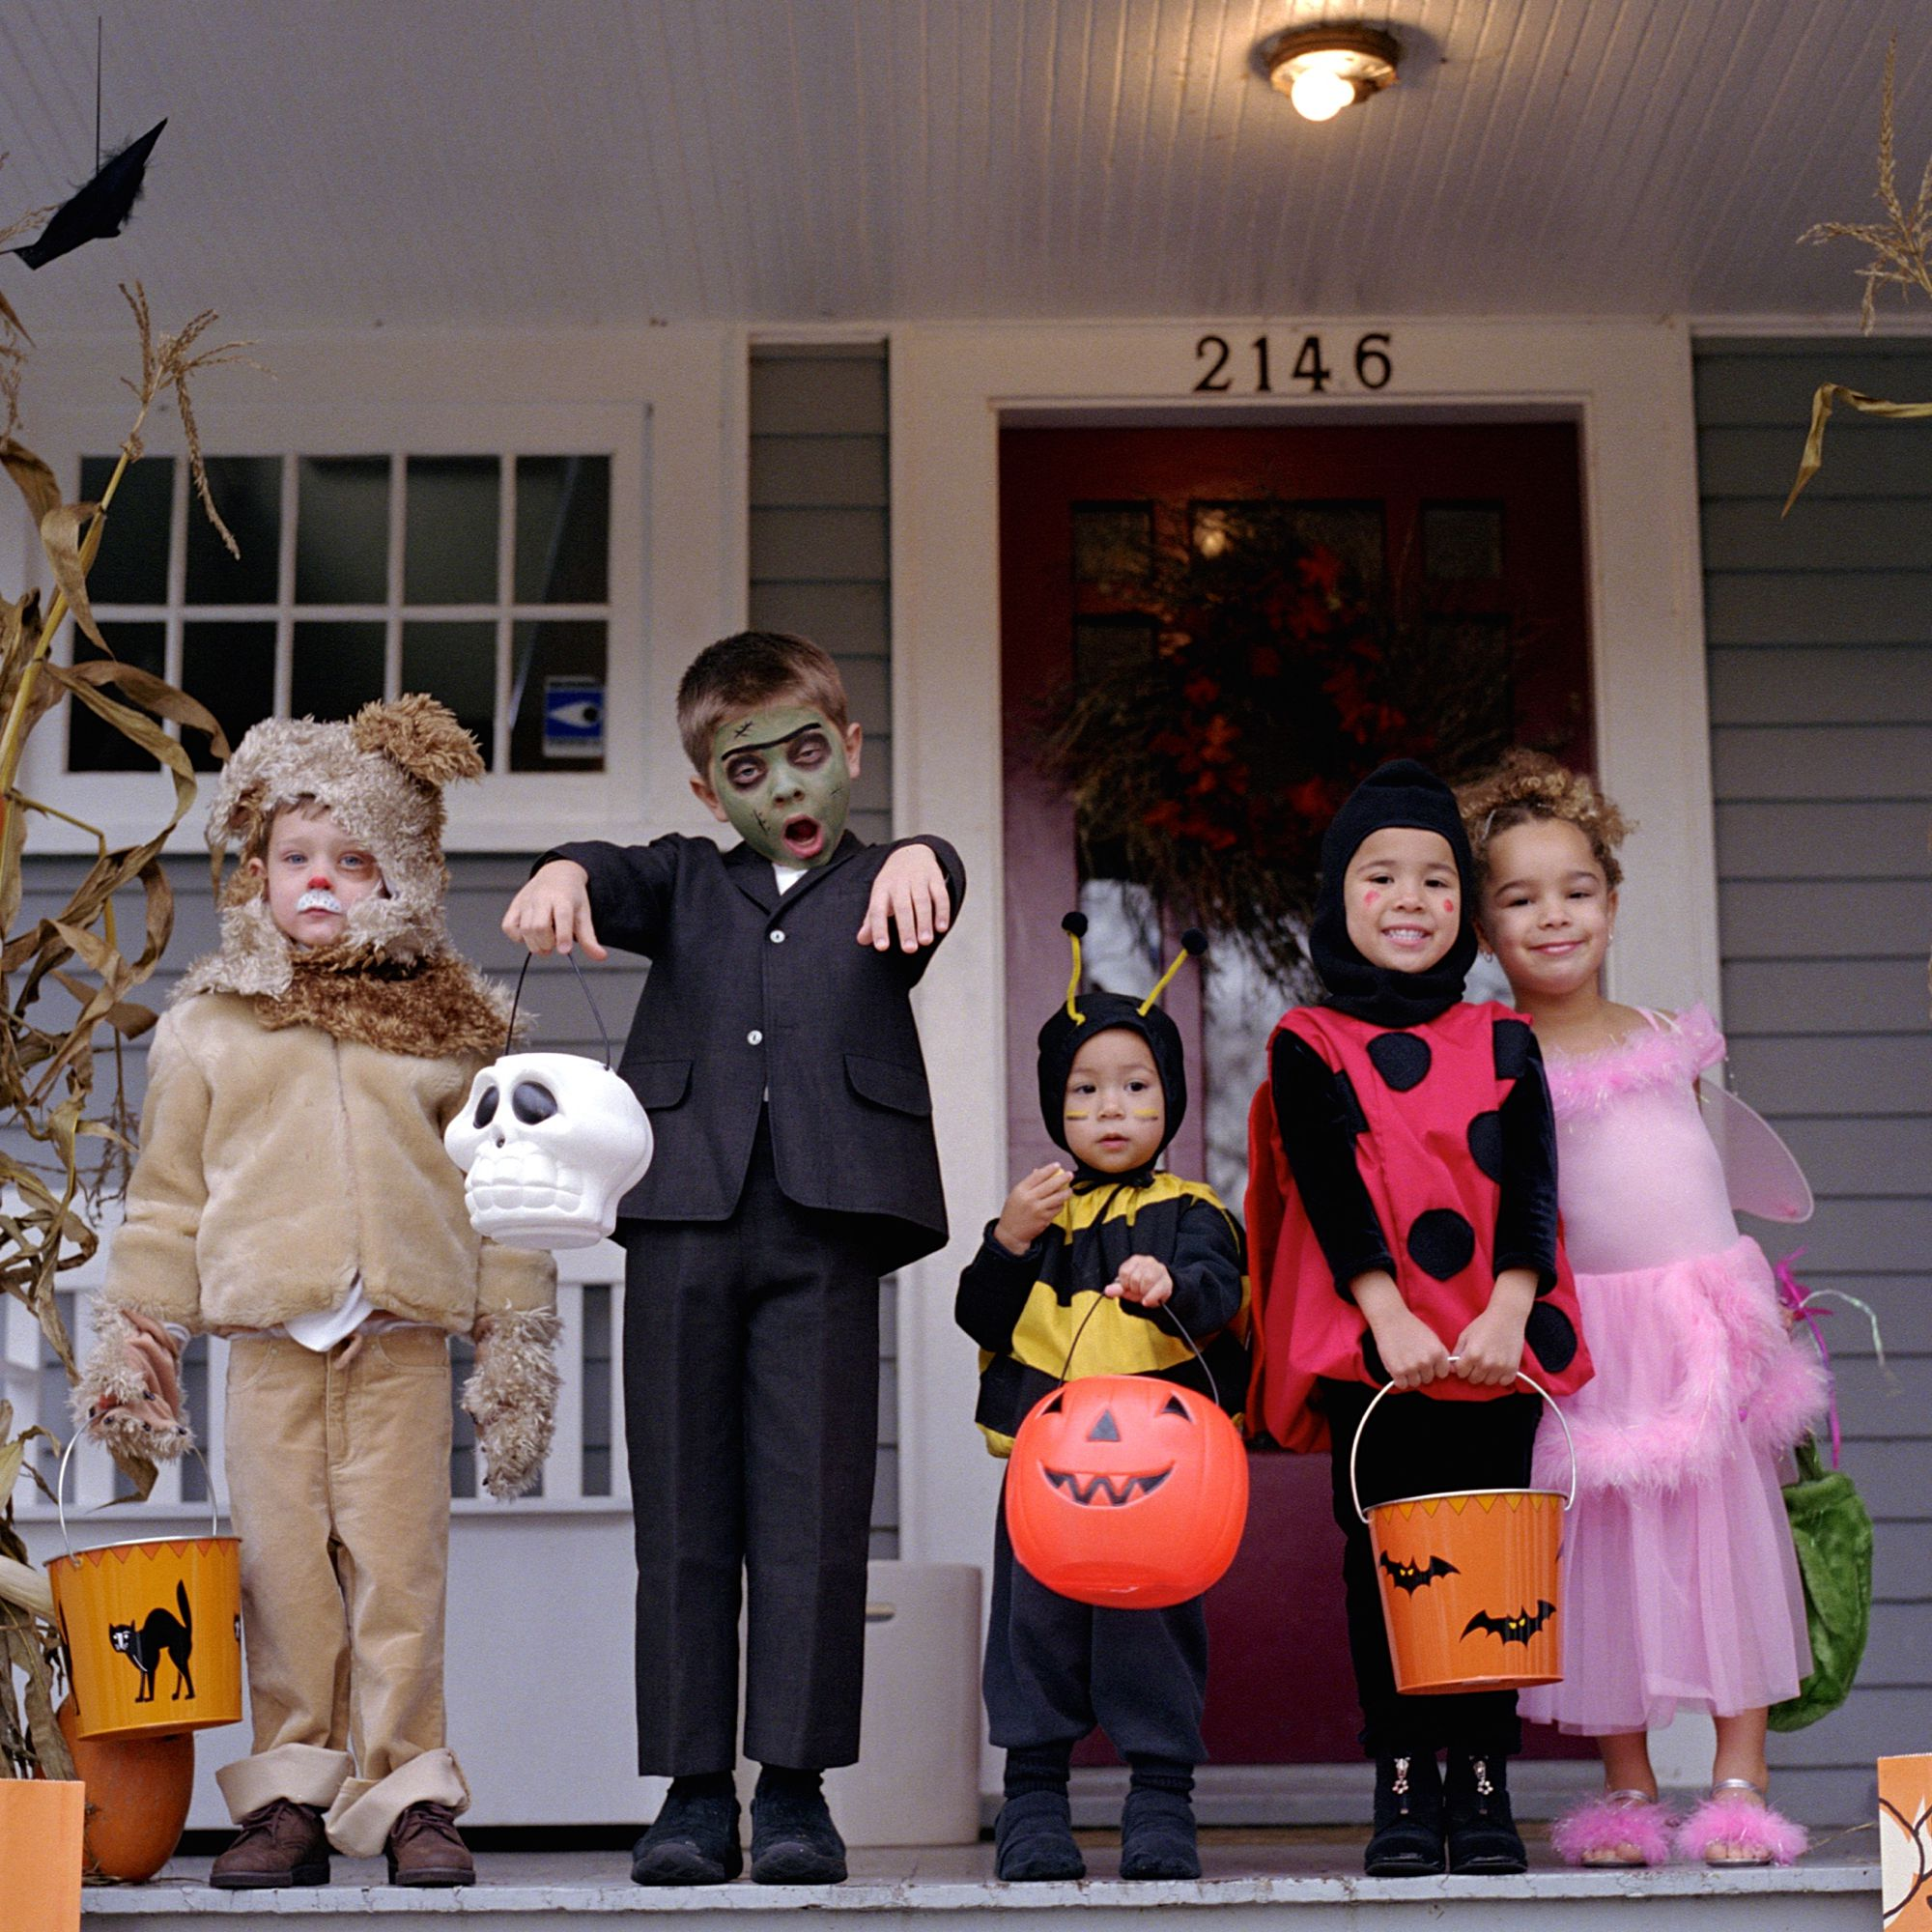 Listing of popular costumes for halloween. When Is Halloween In This And Other Years